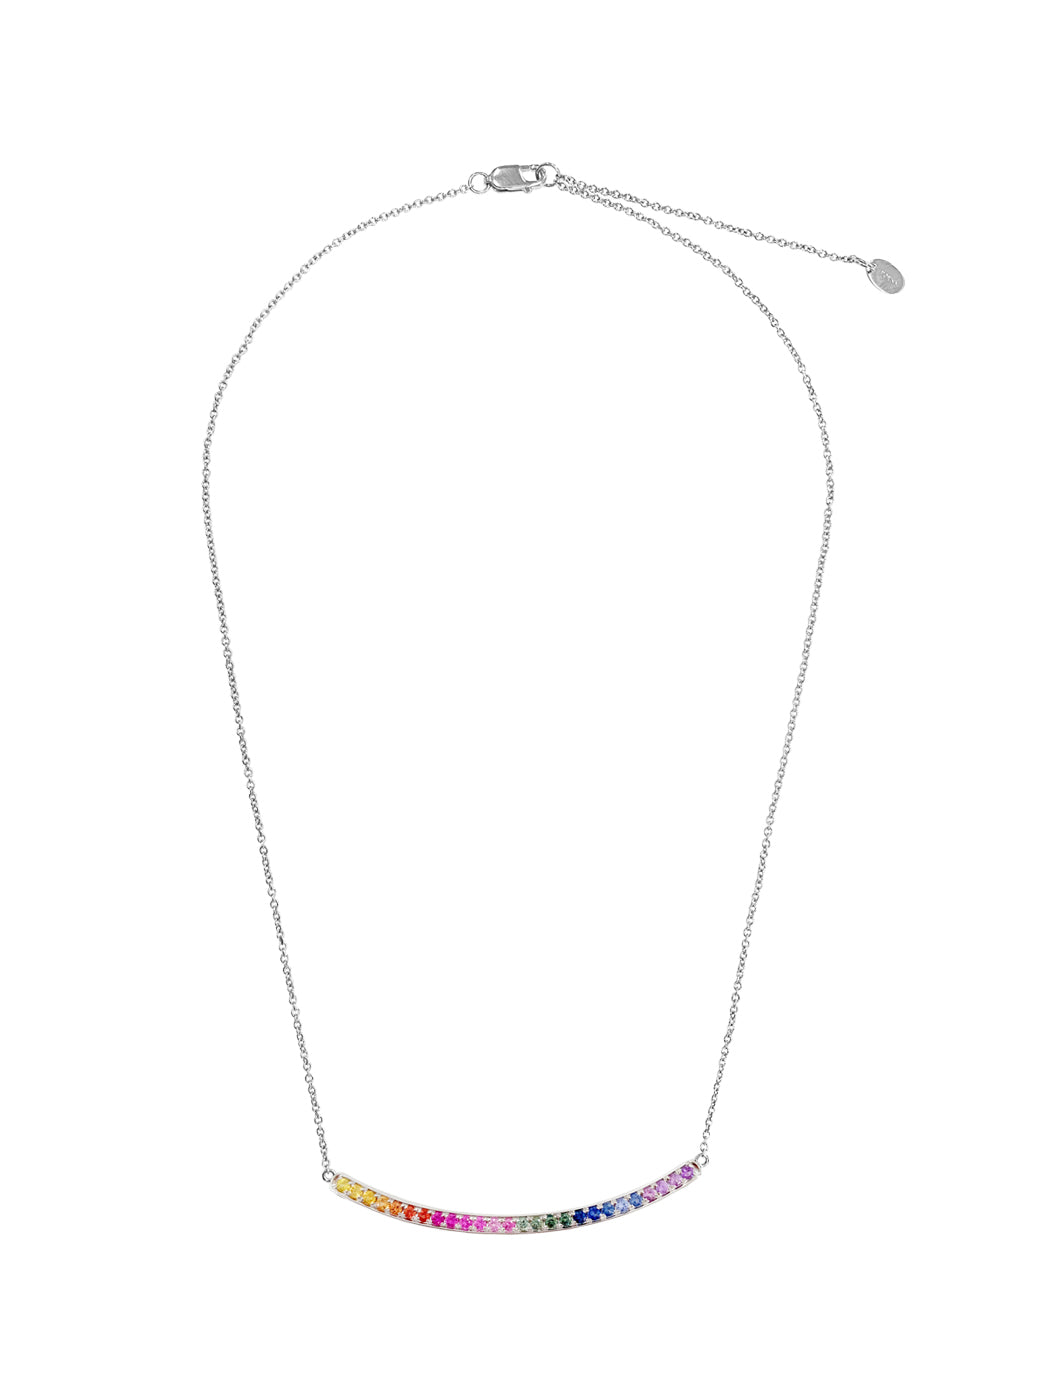 Fiorina Jewellery Arc Necklace White Gold Chakra